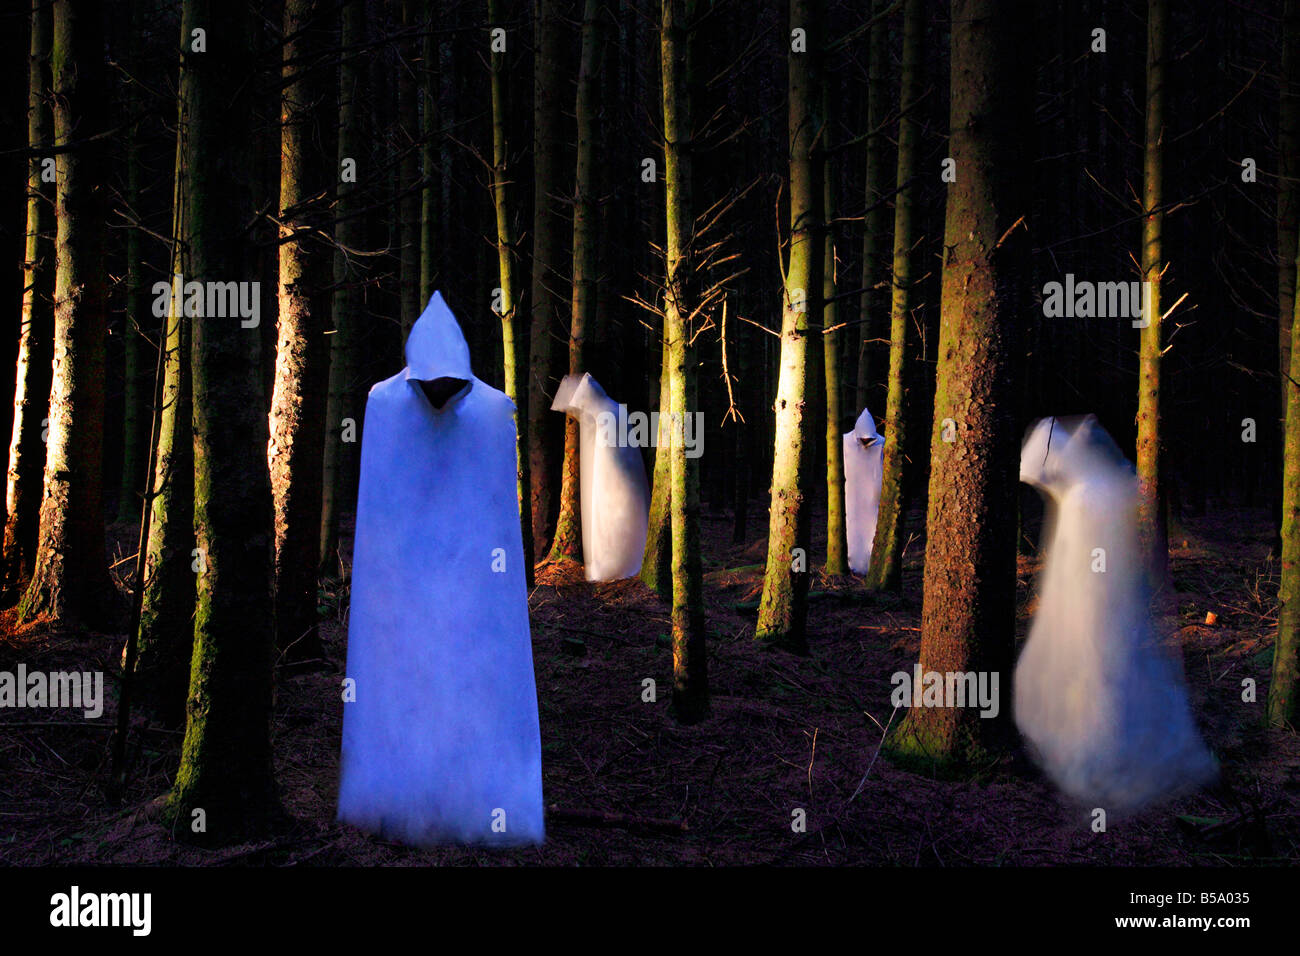 Ghosts in the woods - Stock Image